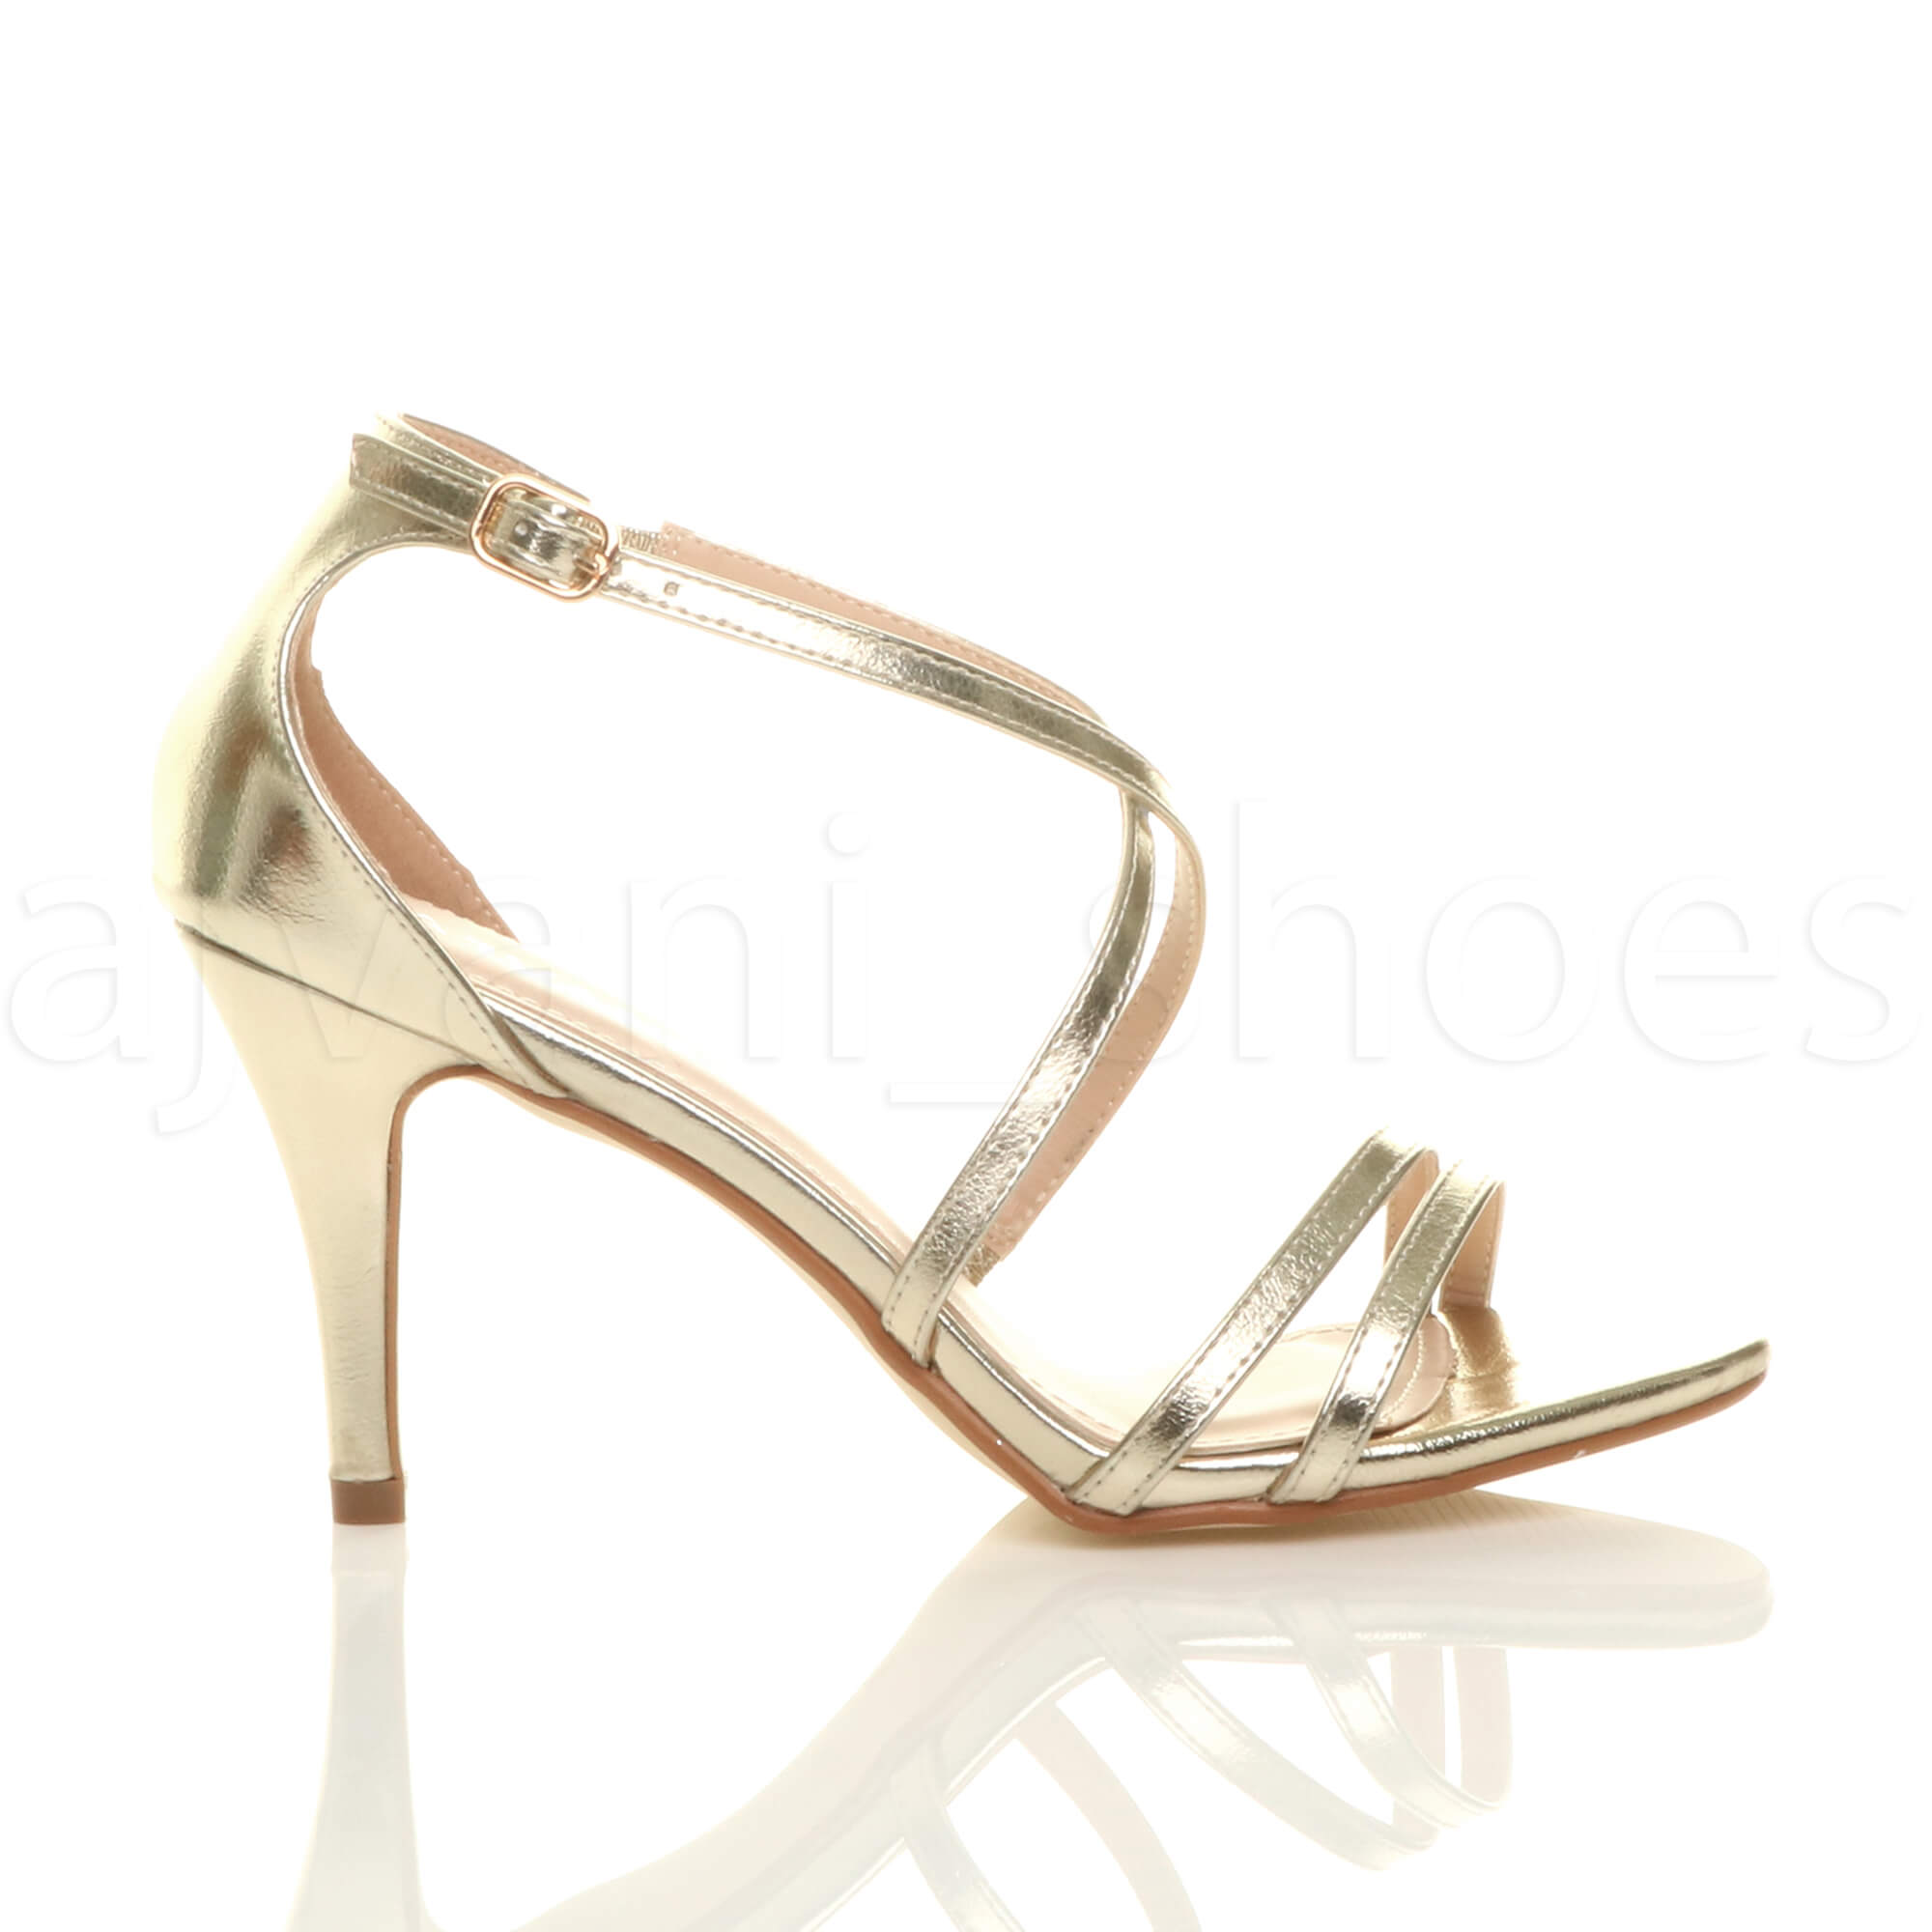 WOMENS-LADIES-MID-HIGH-HEEL-STRAPPY-CROSSOVER-WEDDING-PROM-SANDALS-SHOES-SIZE thumbnail 59